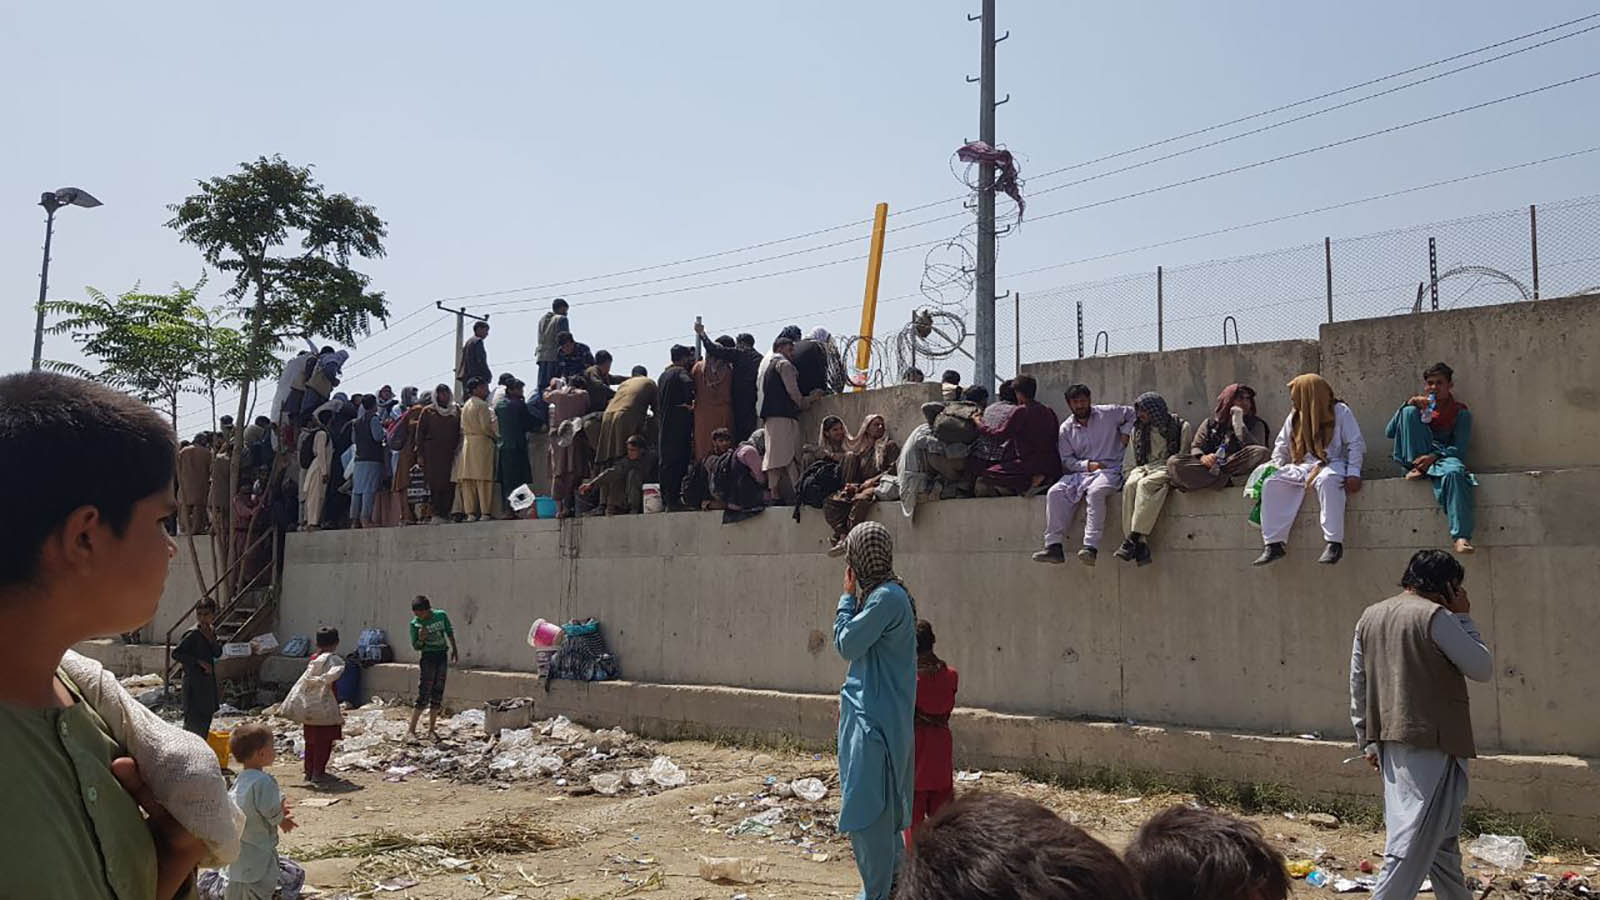 People wait outside Hamid Karzai International Airport in Kabul, Afghanistan, on August 23.